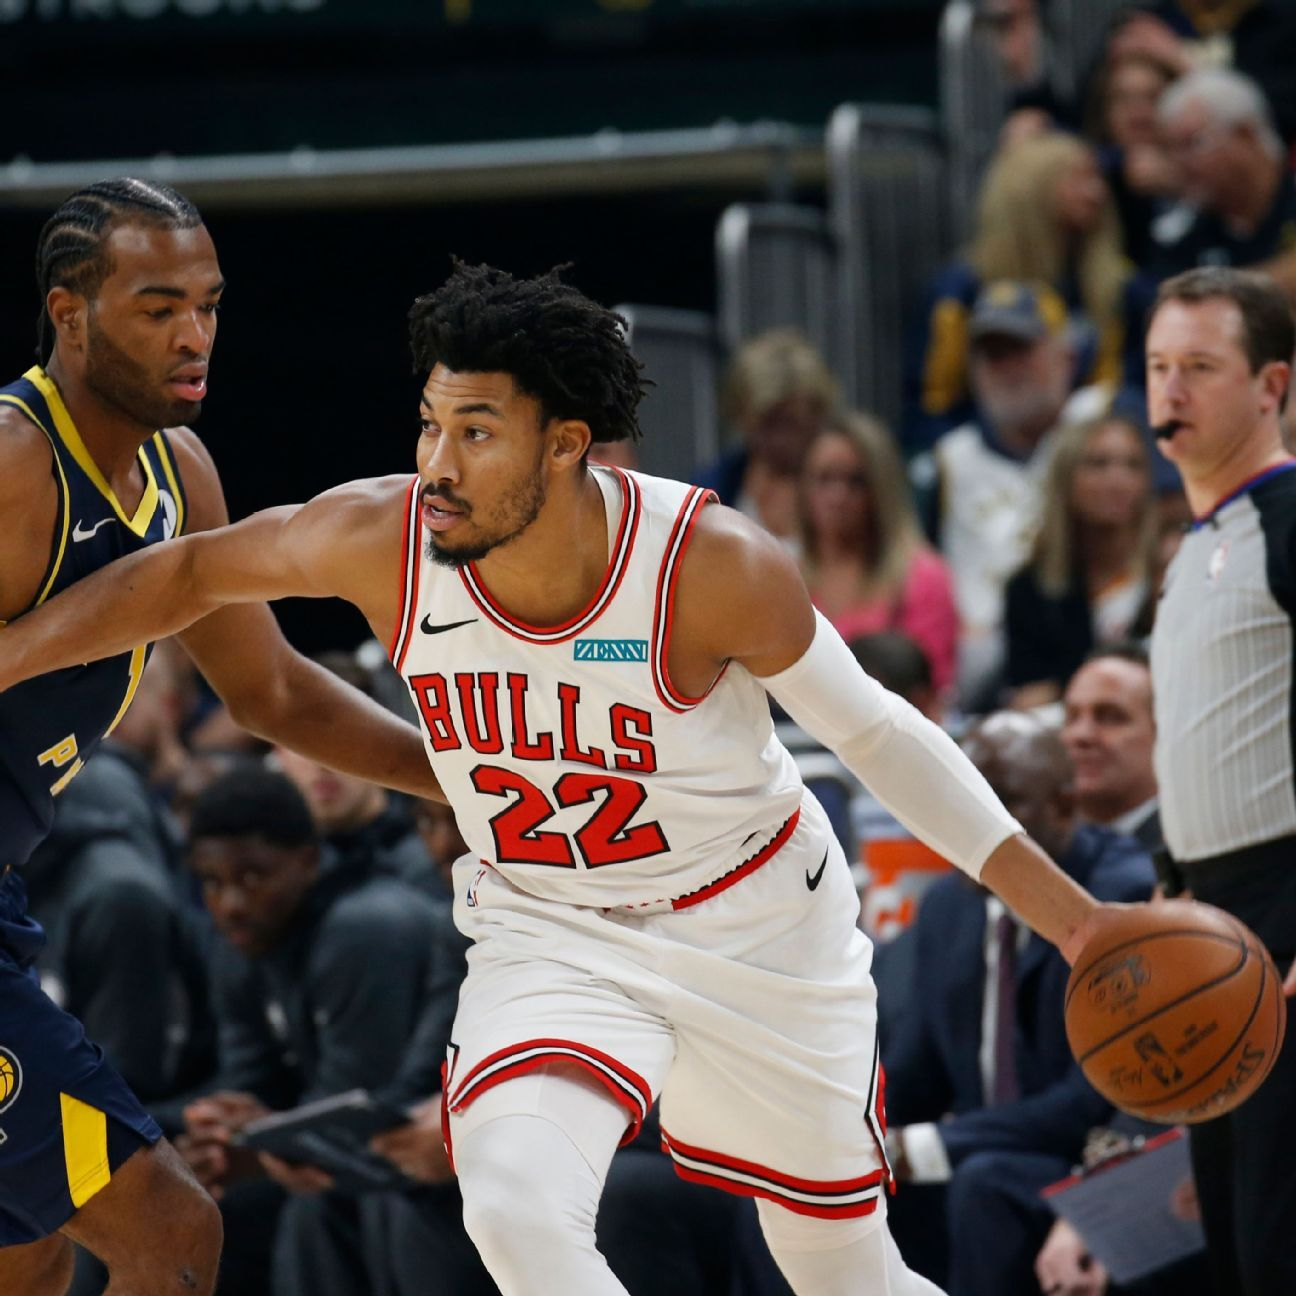 Bulls' Otto Porter Jr. out at least 4 more weeks with small fracture in foot